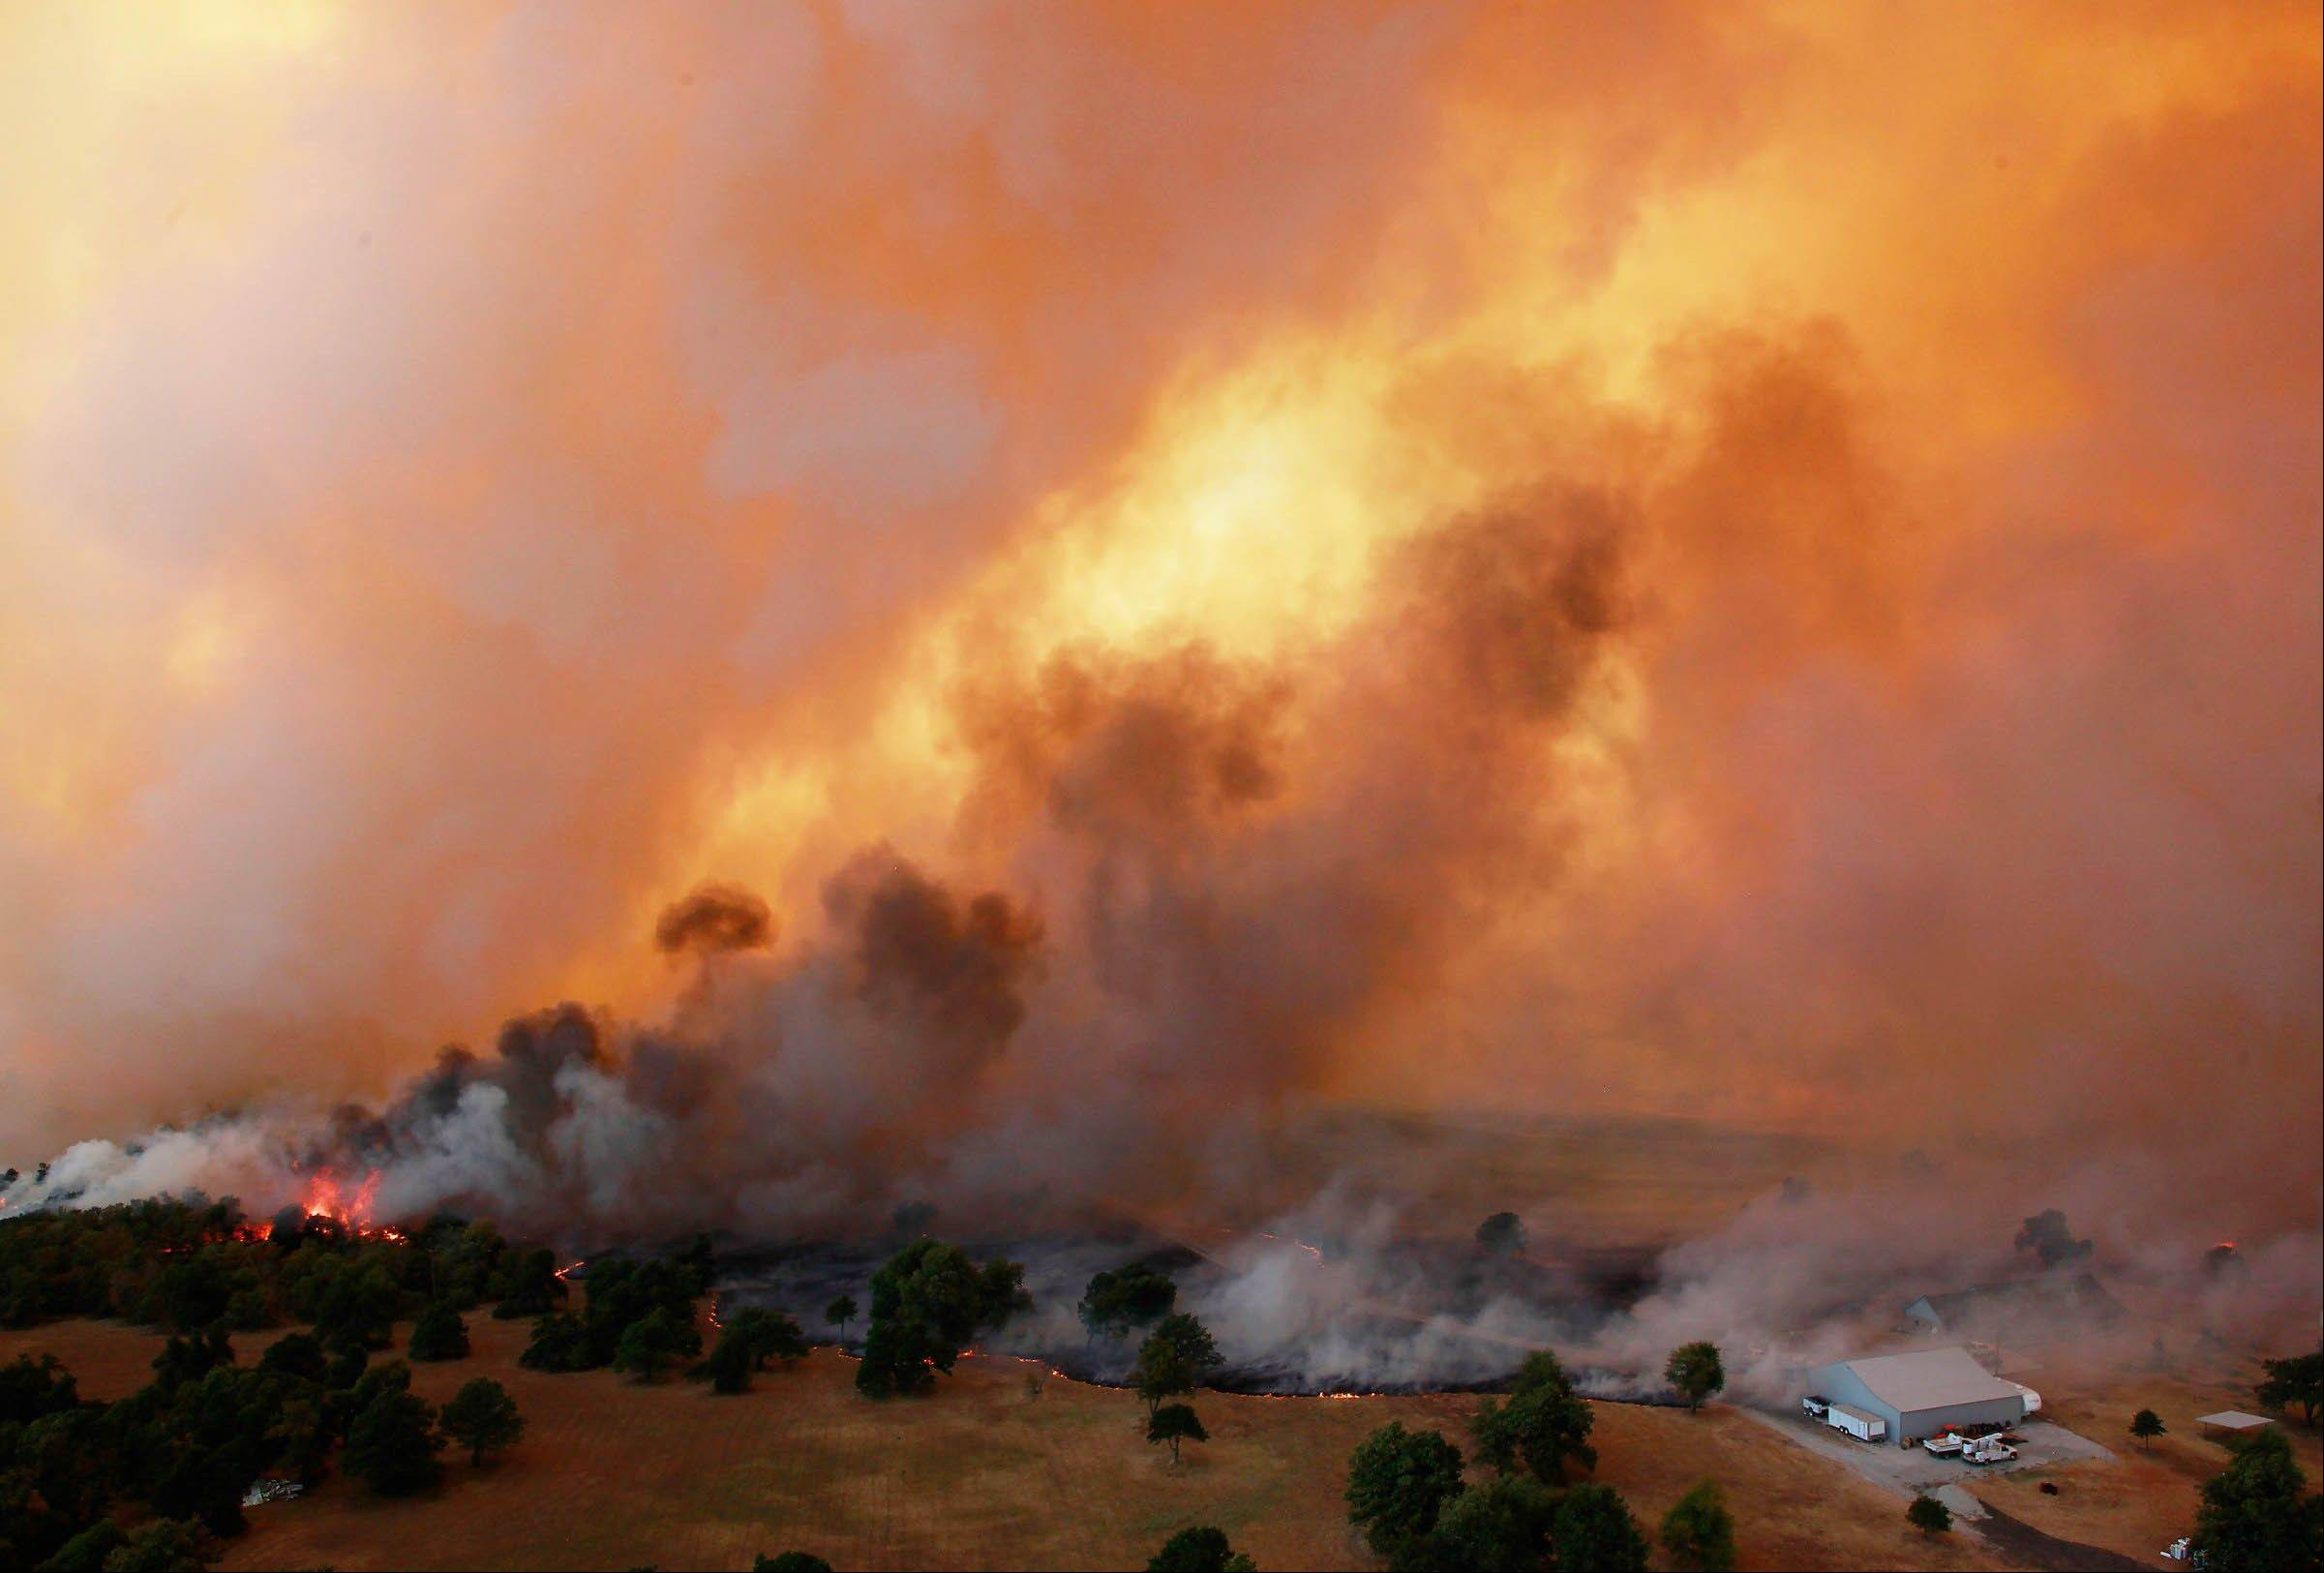 Flames burn near Highway 48 and HW 38 junction east of Drumright, Okla., on Saturday. Emergency management officials have ordered evacuations of homes in several areas as wildfires burn across the state.